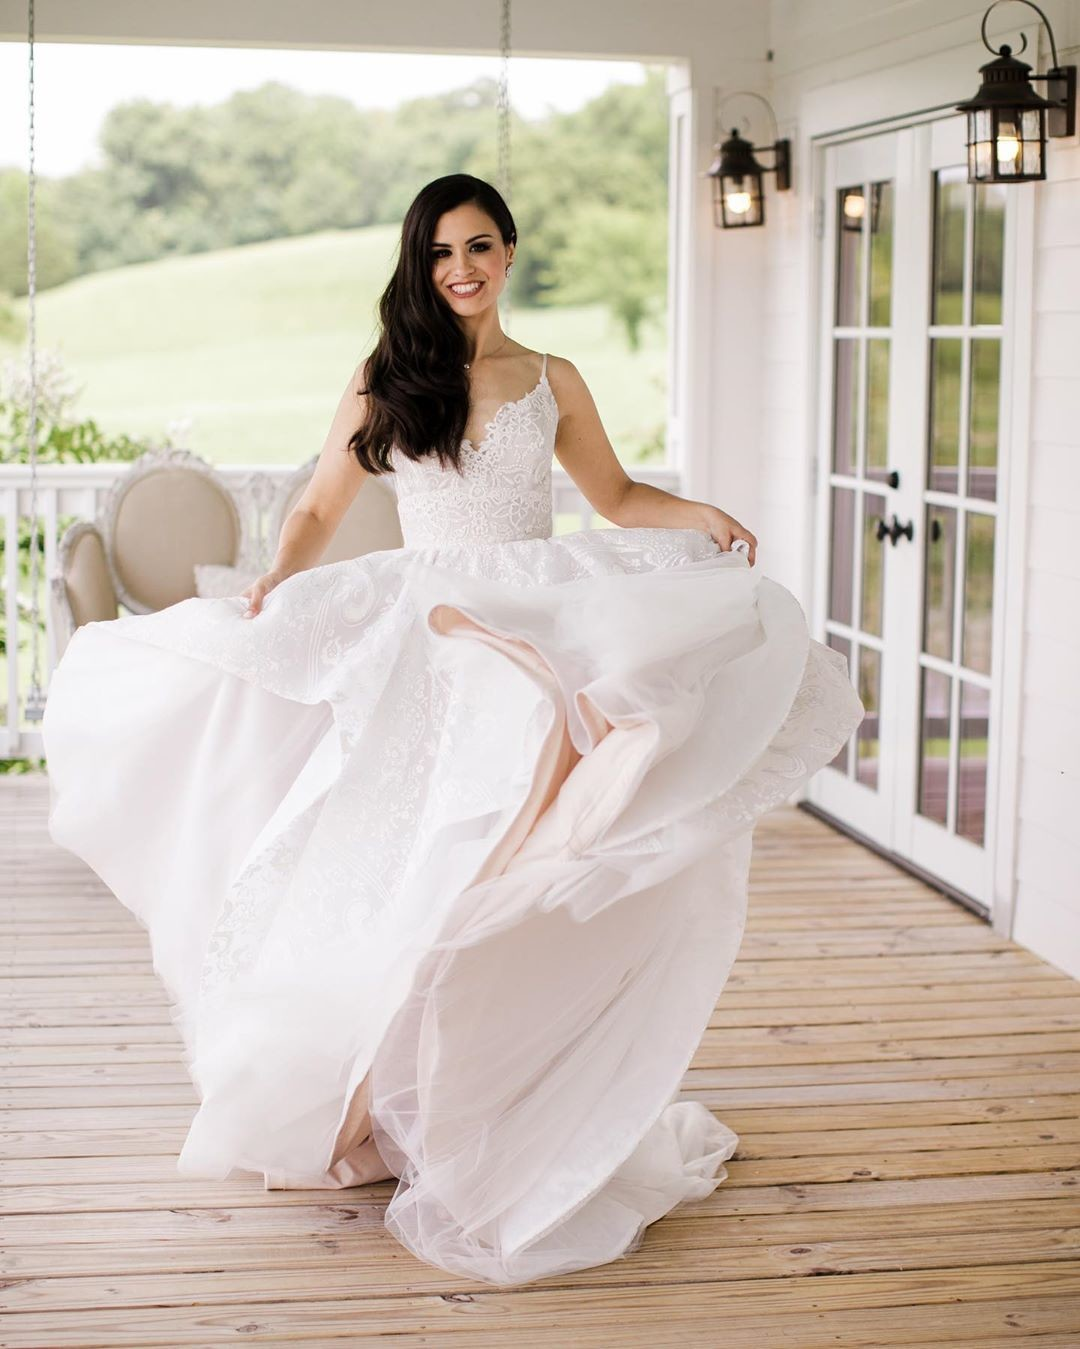 Is it possible to not smile when looking at these photos? Janelle looks so gorgeous in her wedding gown and I can feel the energy in